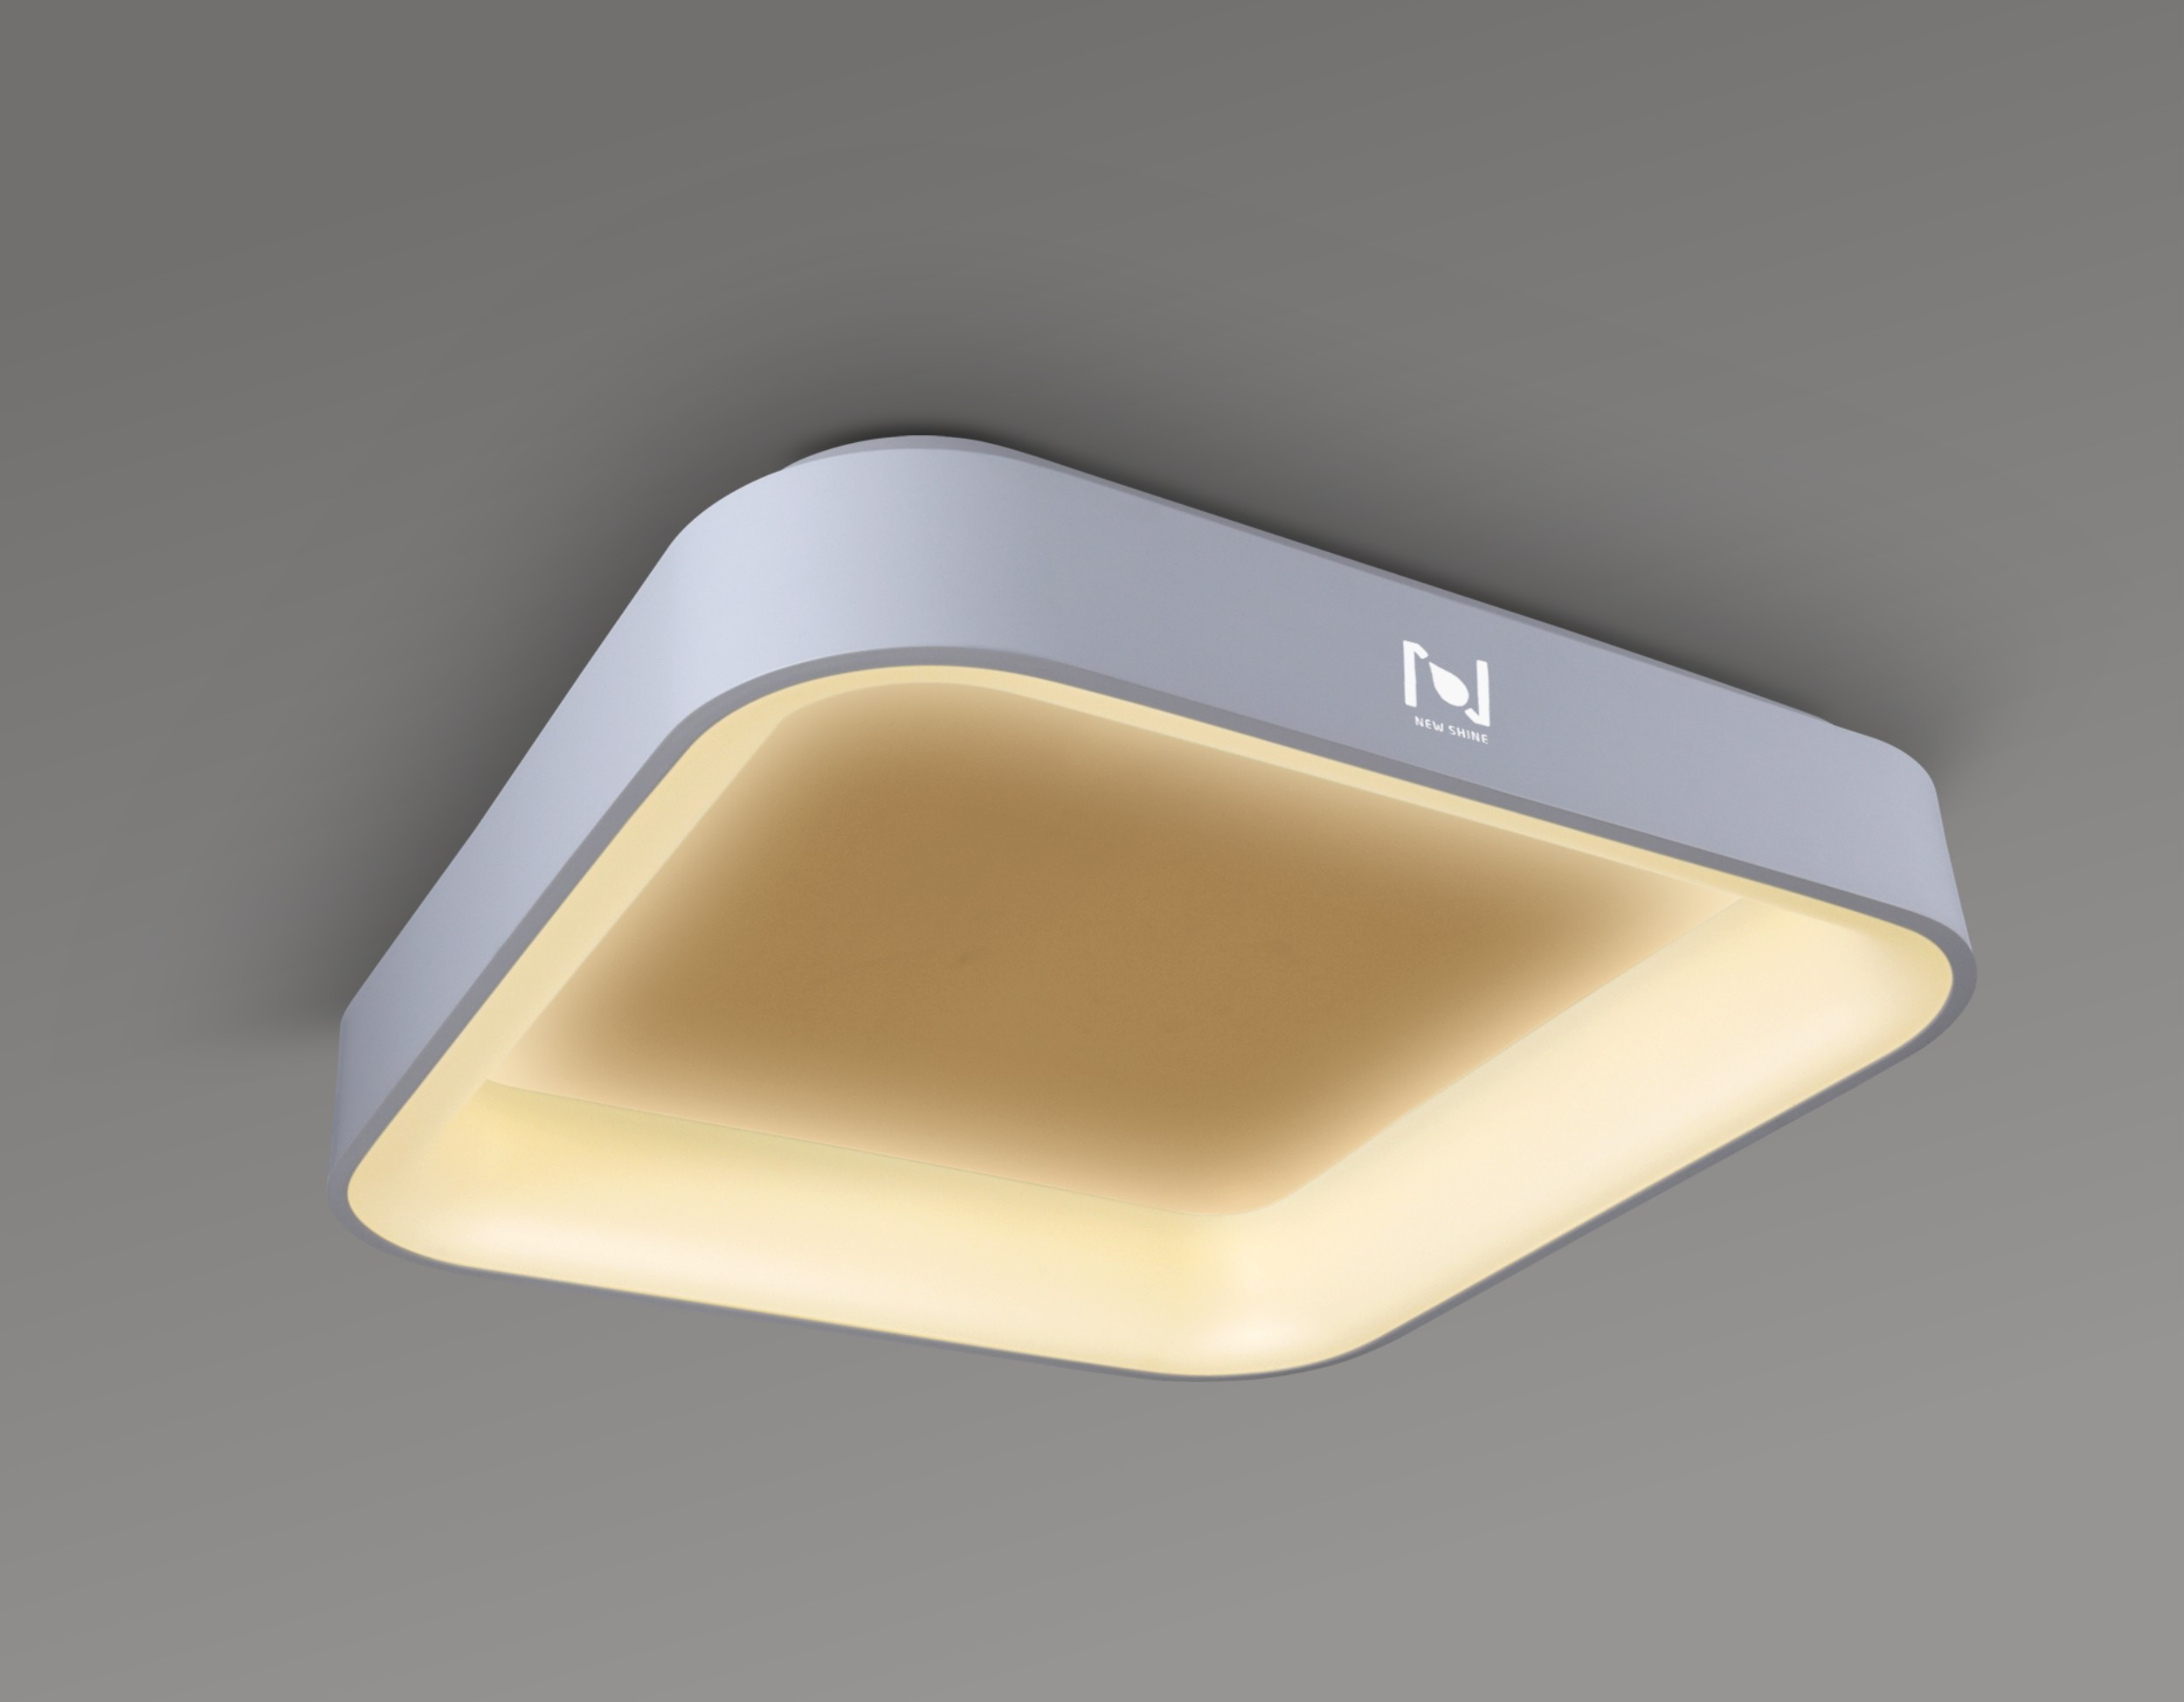 MOUNTED DECORATIVE SQUARE LED LIGHT LL0202M-50W